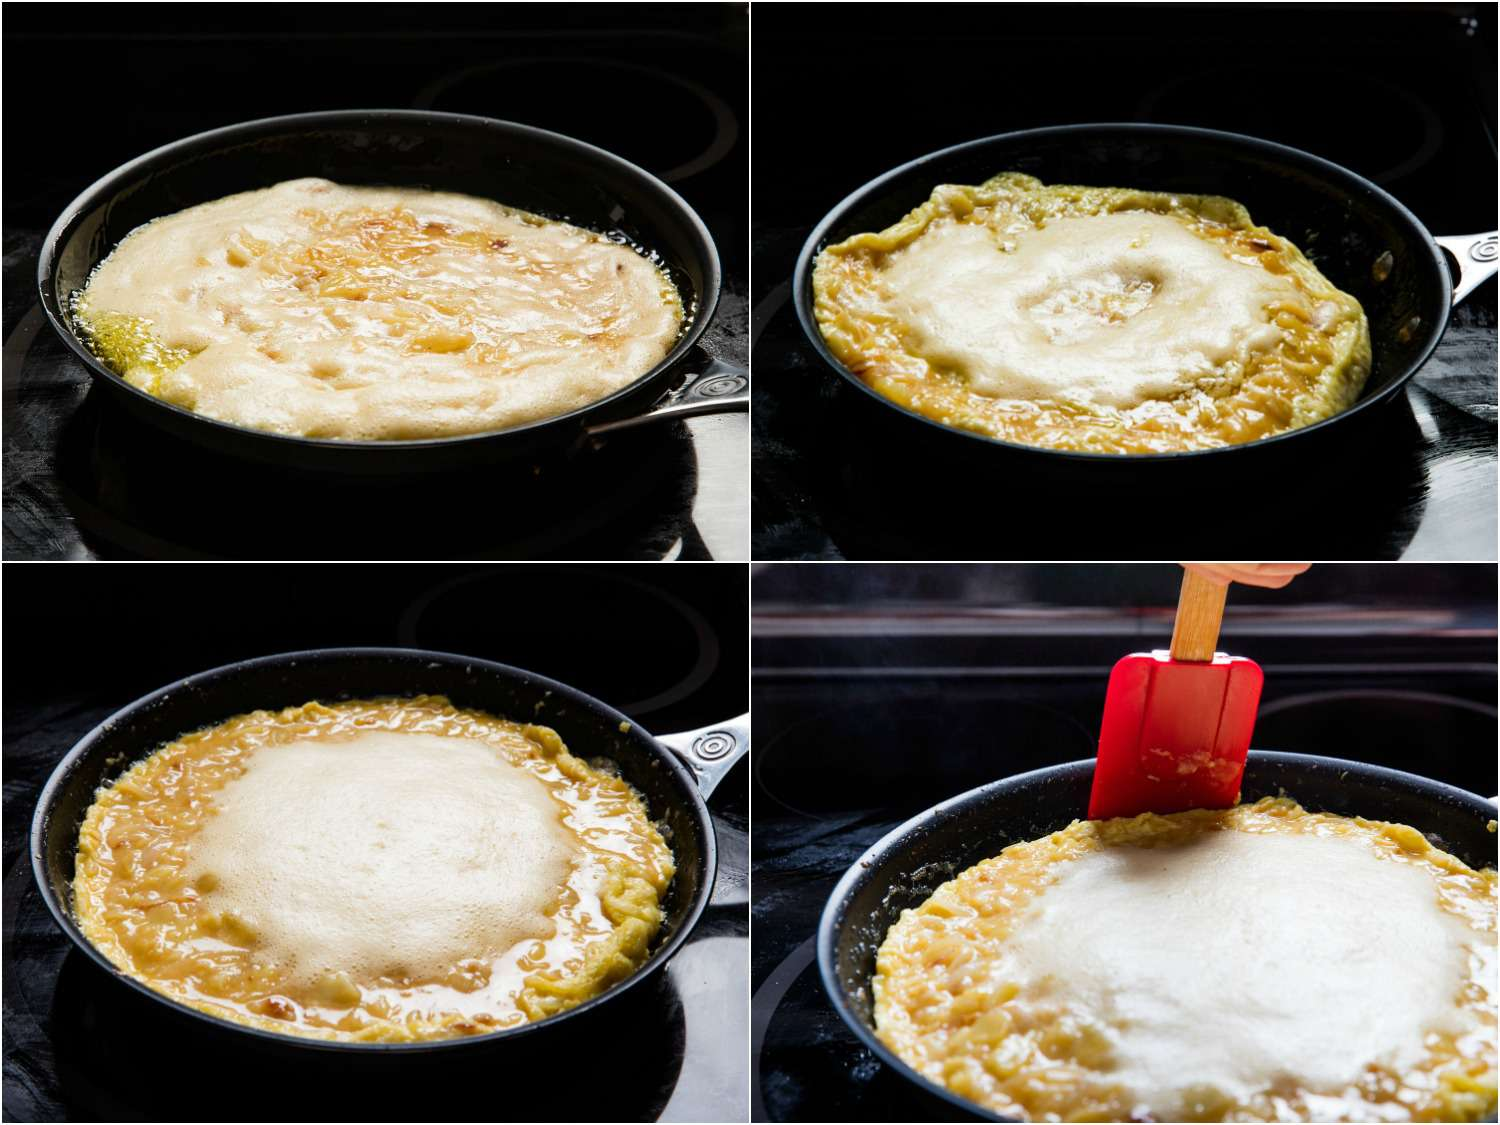 A collage of four photos showing how to cook tortilla española in a skillet. The eggs are frothy in the center. The cook uses a spatula to loosen the edges.